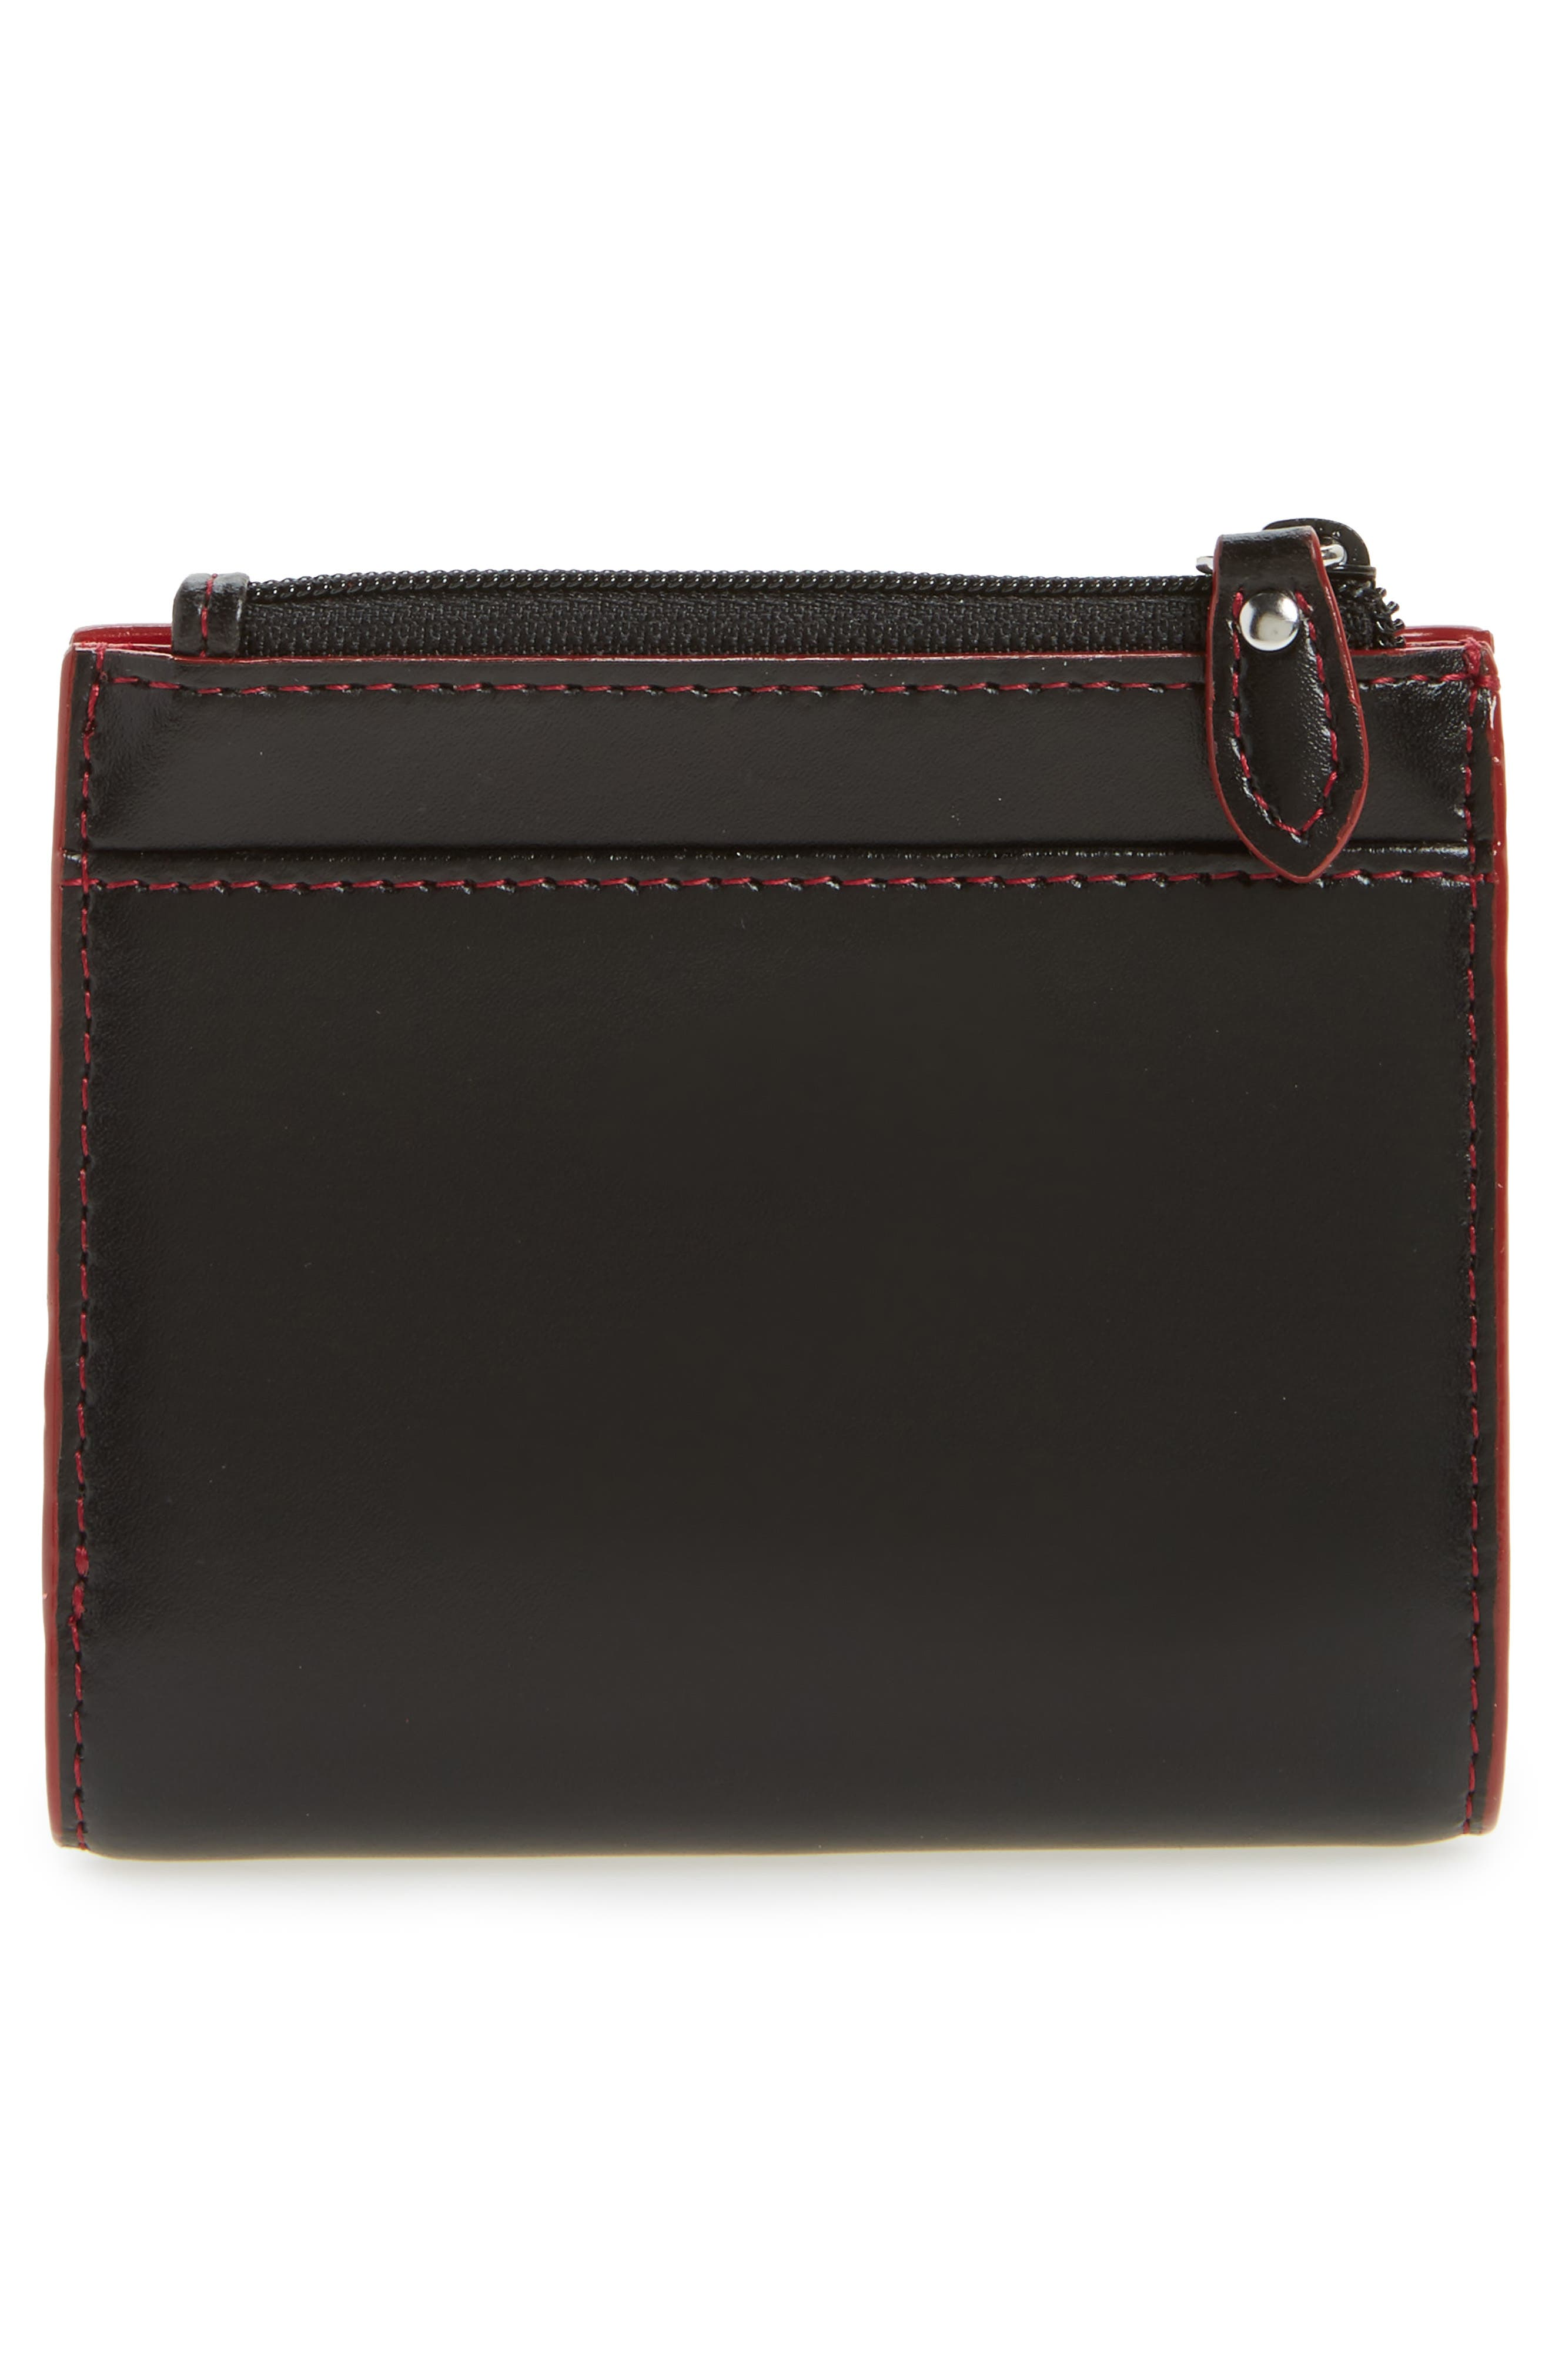 Audrey Under Lock & Key Aldis Leather Wallet,                             Alternate thumbnail 10, color,